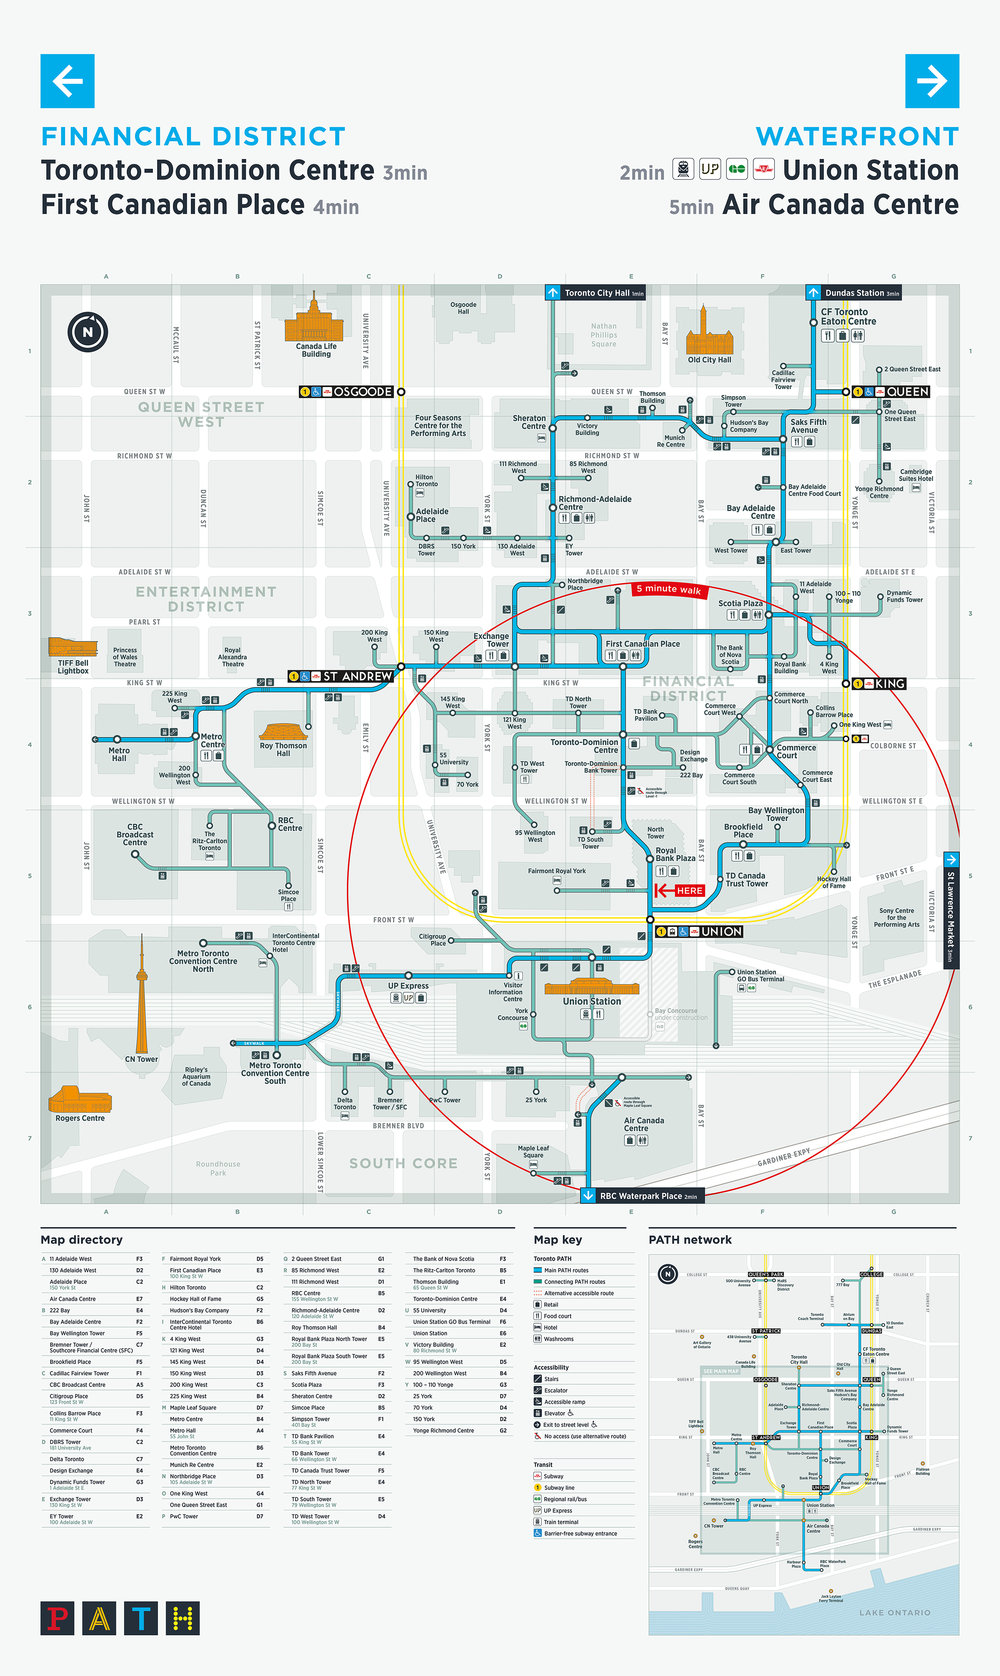 New schematic PATH map makes the network easier to navigate